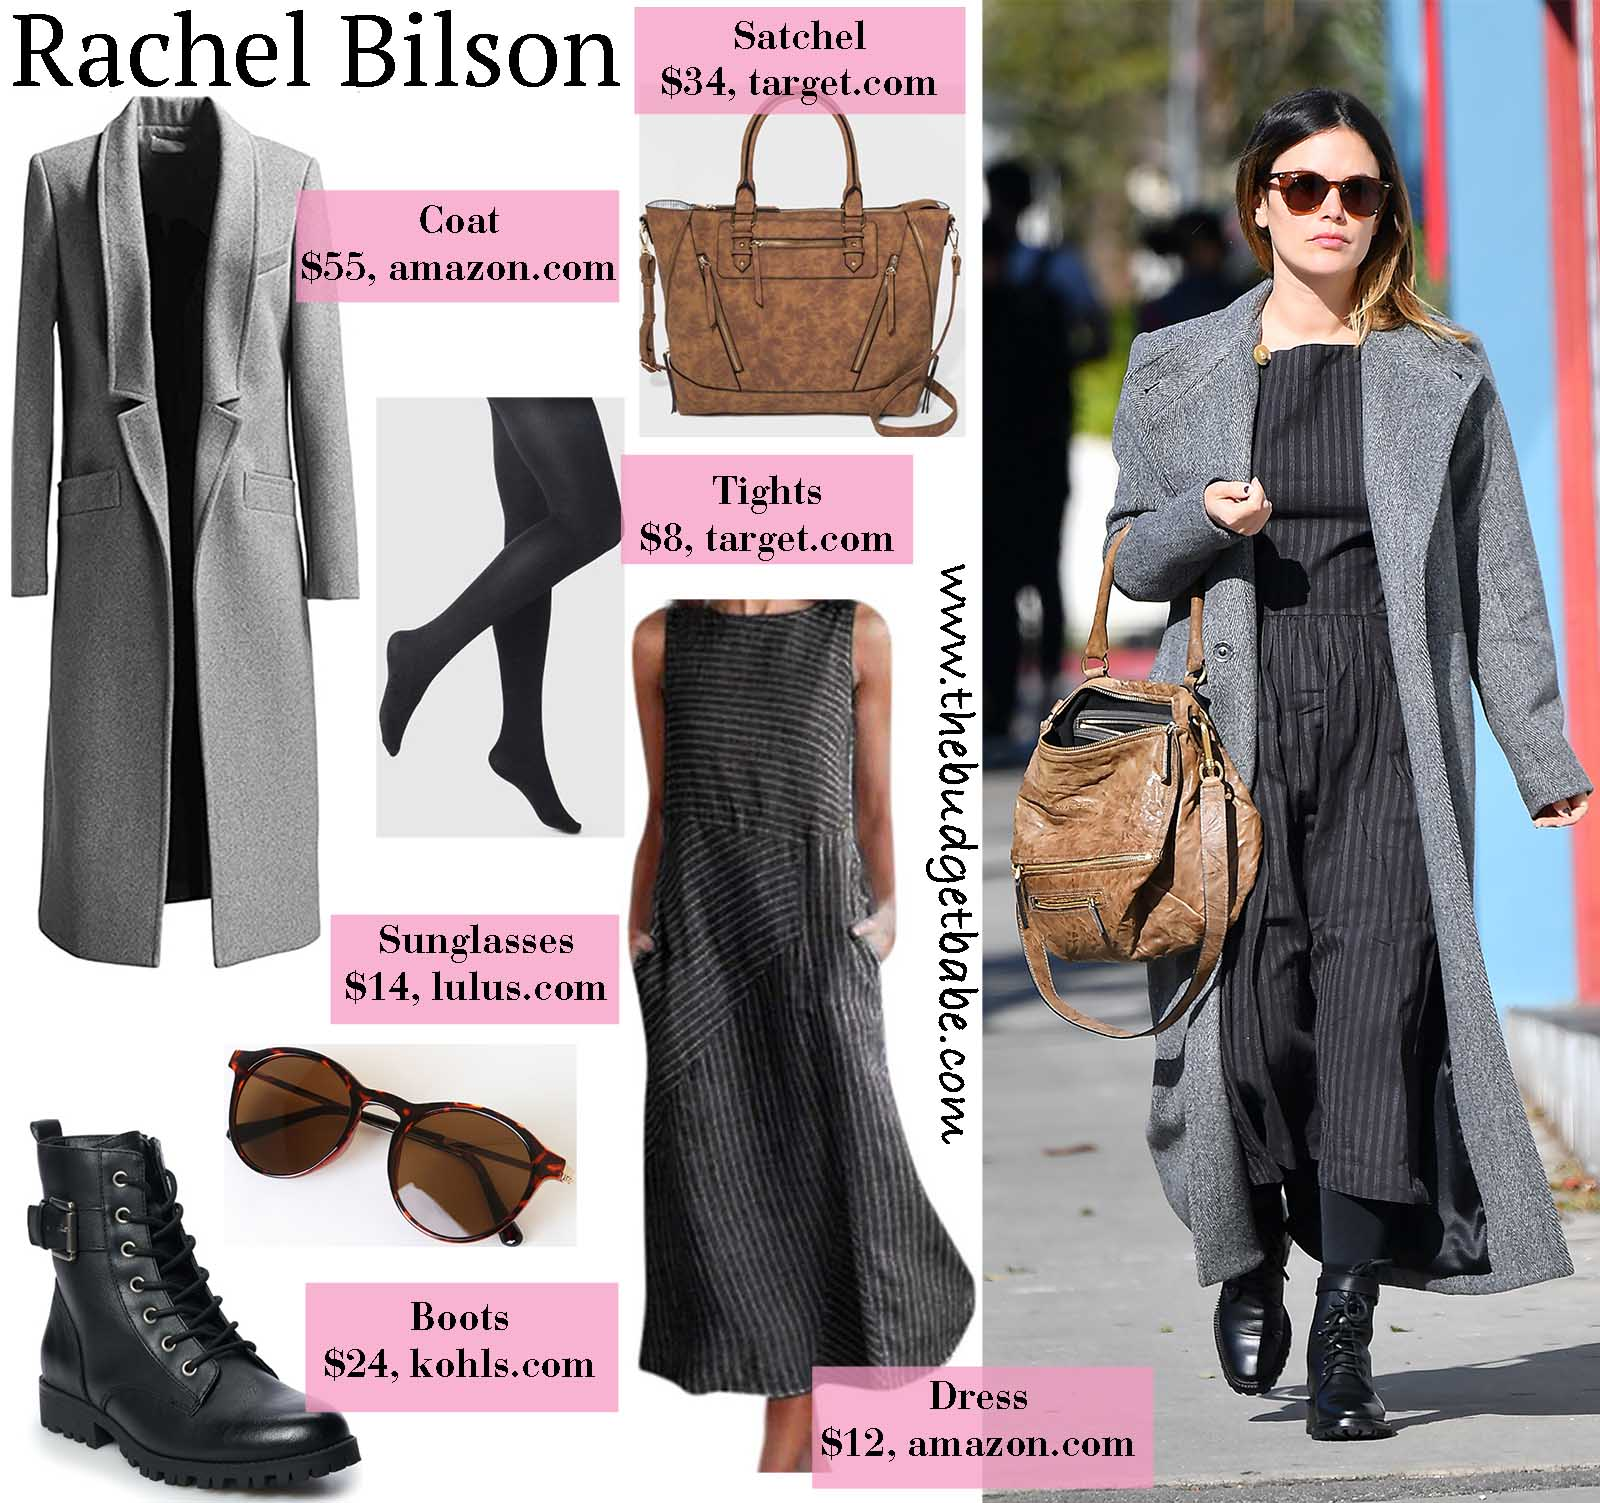 Rachel Bilson is stylish in an overcoat and combat boots!